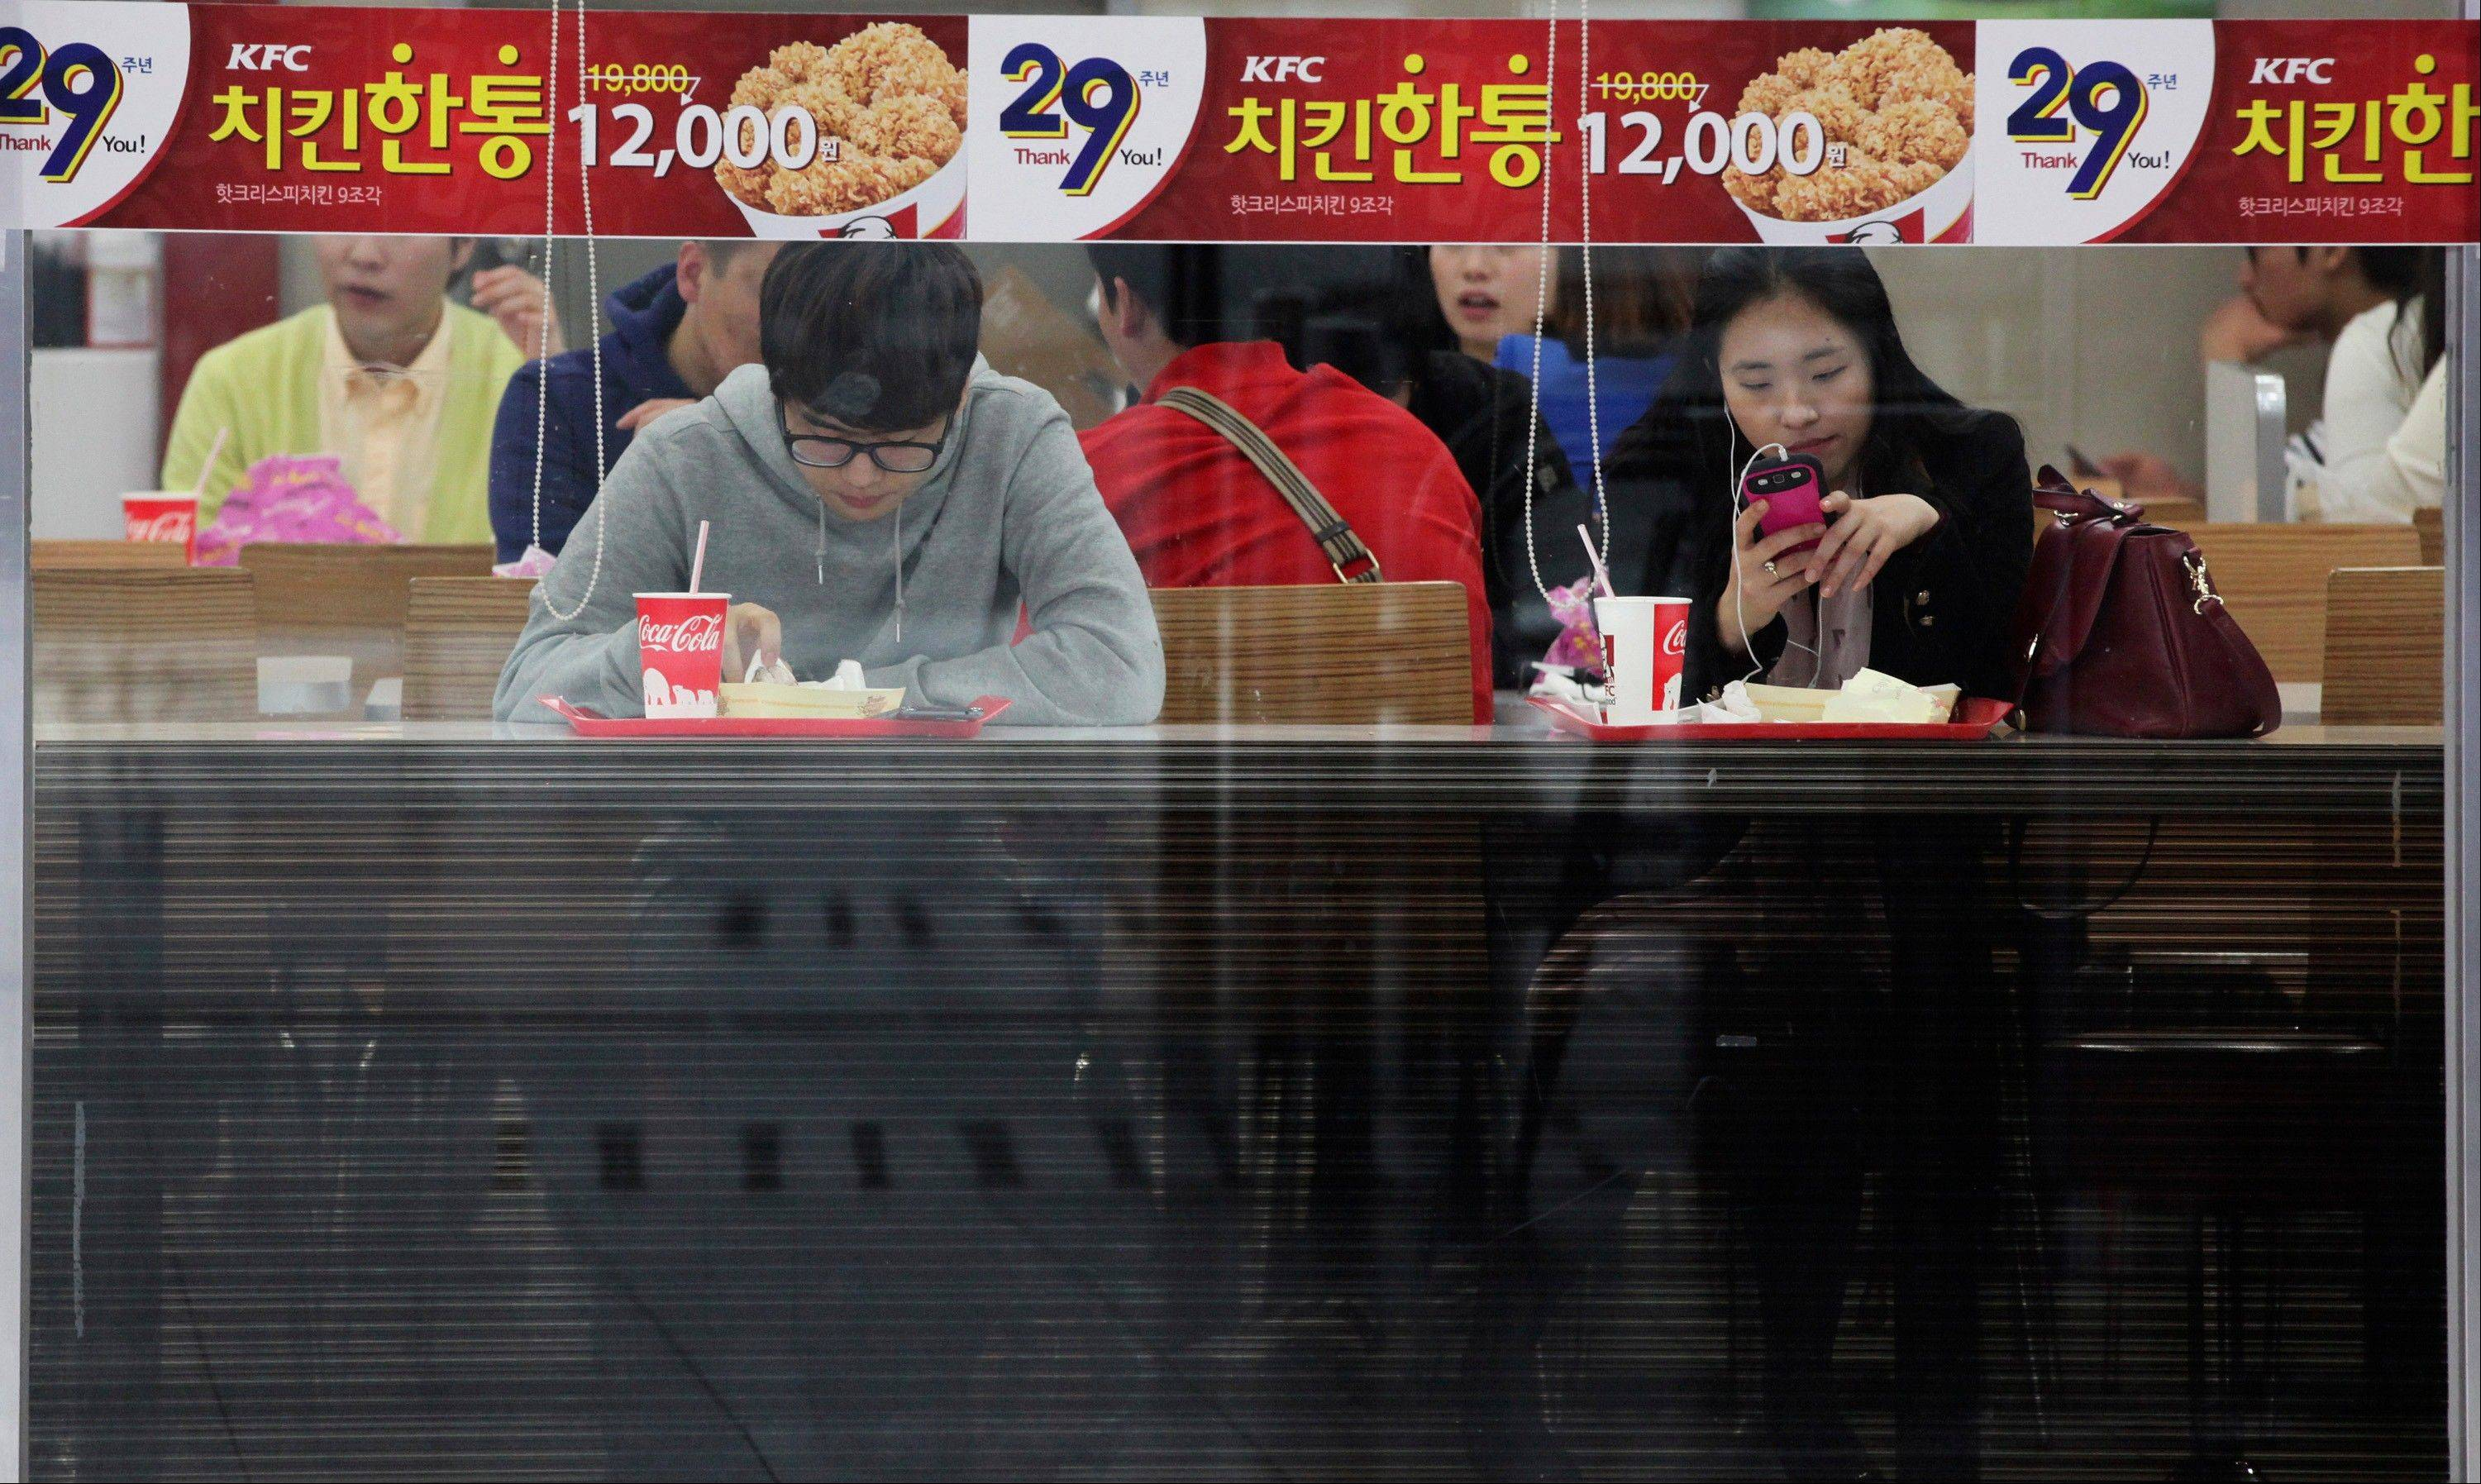 Outsiders might hear the opening notes of a war in the deluge of threats and provocations from North Korea, but to South Koreans it is a familiar song. Foreigners unused to North Korean rumblings have canceled trips to the Korean Peninsula. But to get South Koreans' attention, Pyongyang must compete with the economy, celebrity scandals, baseball games and cherry blossoms.